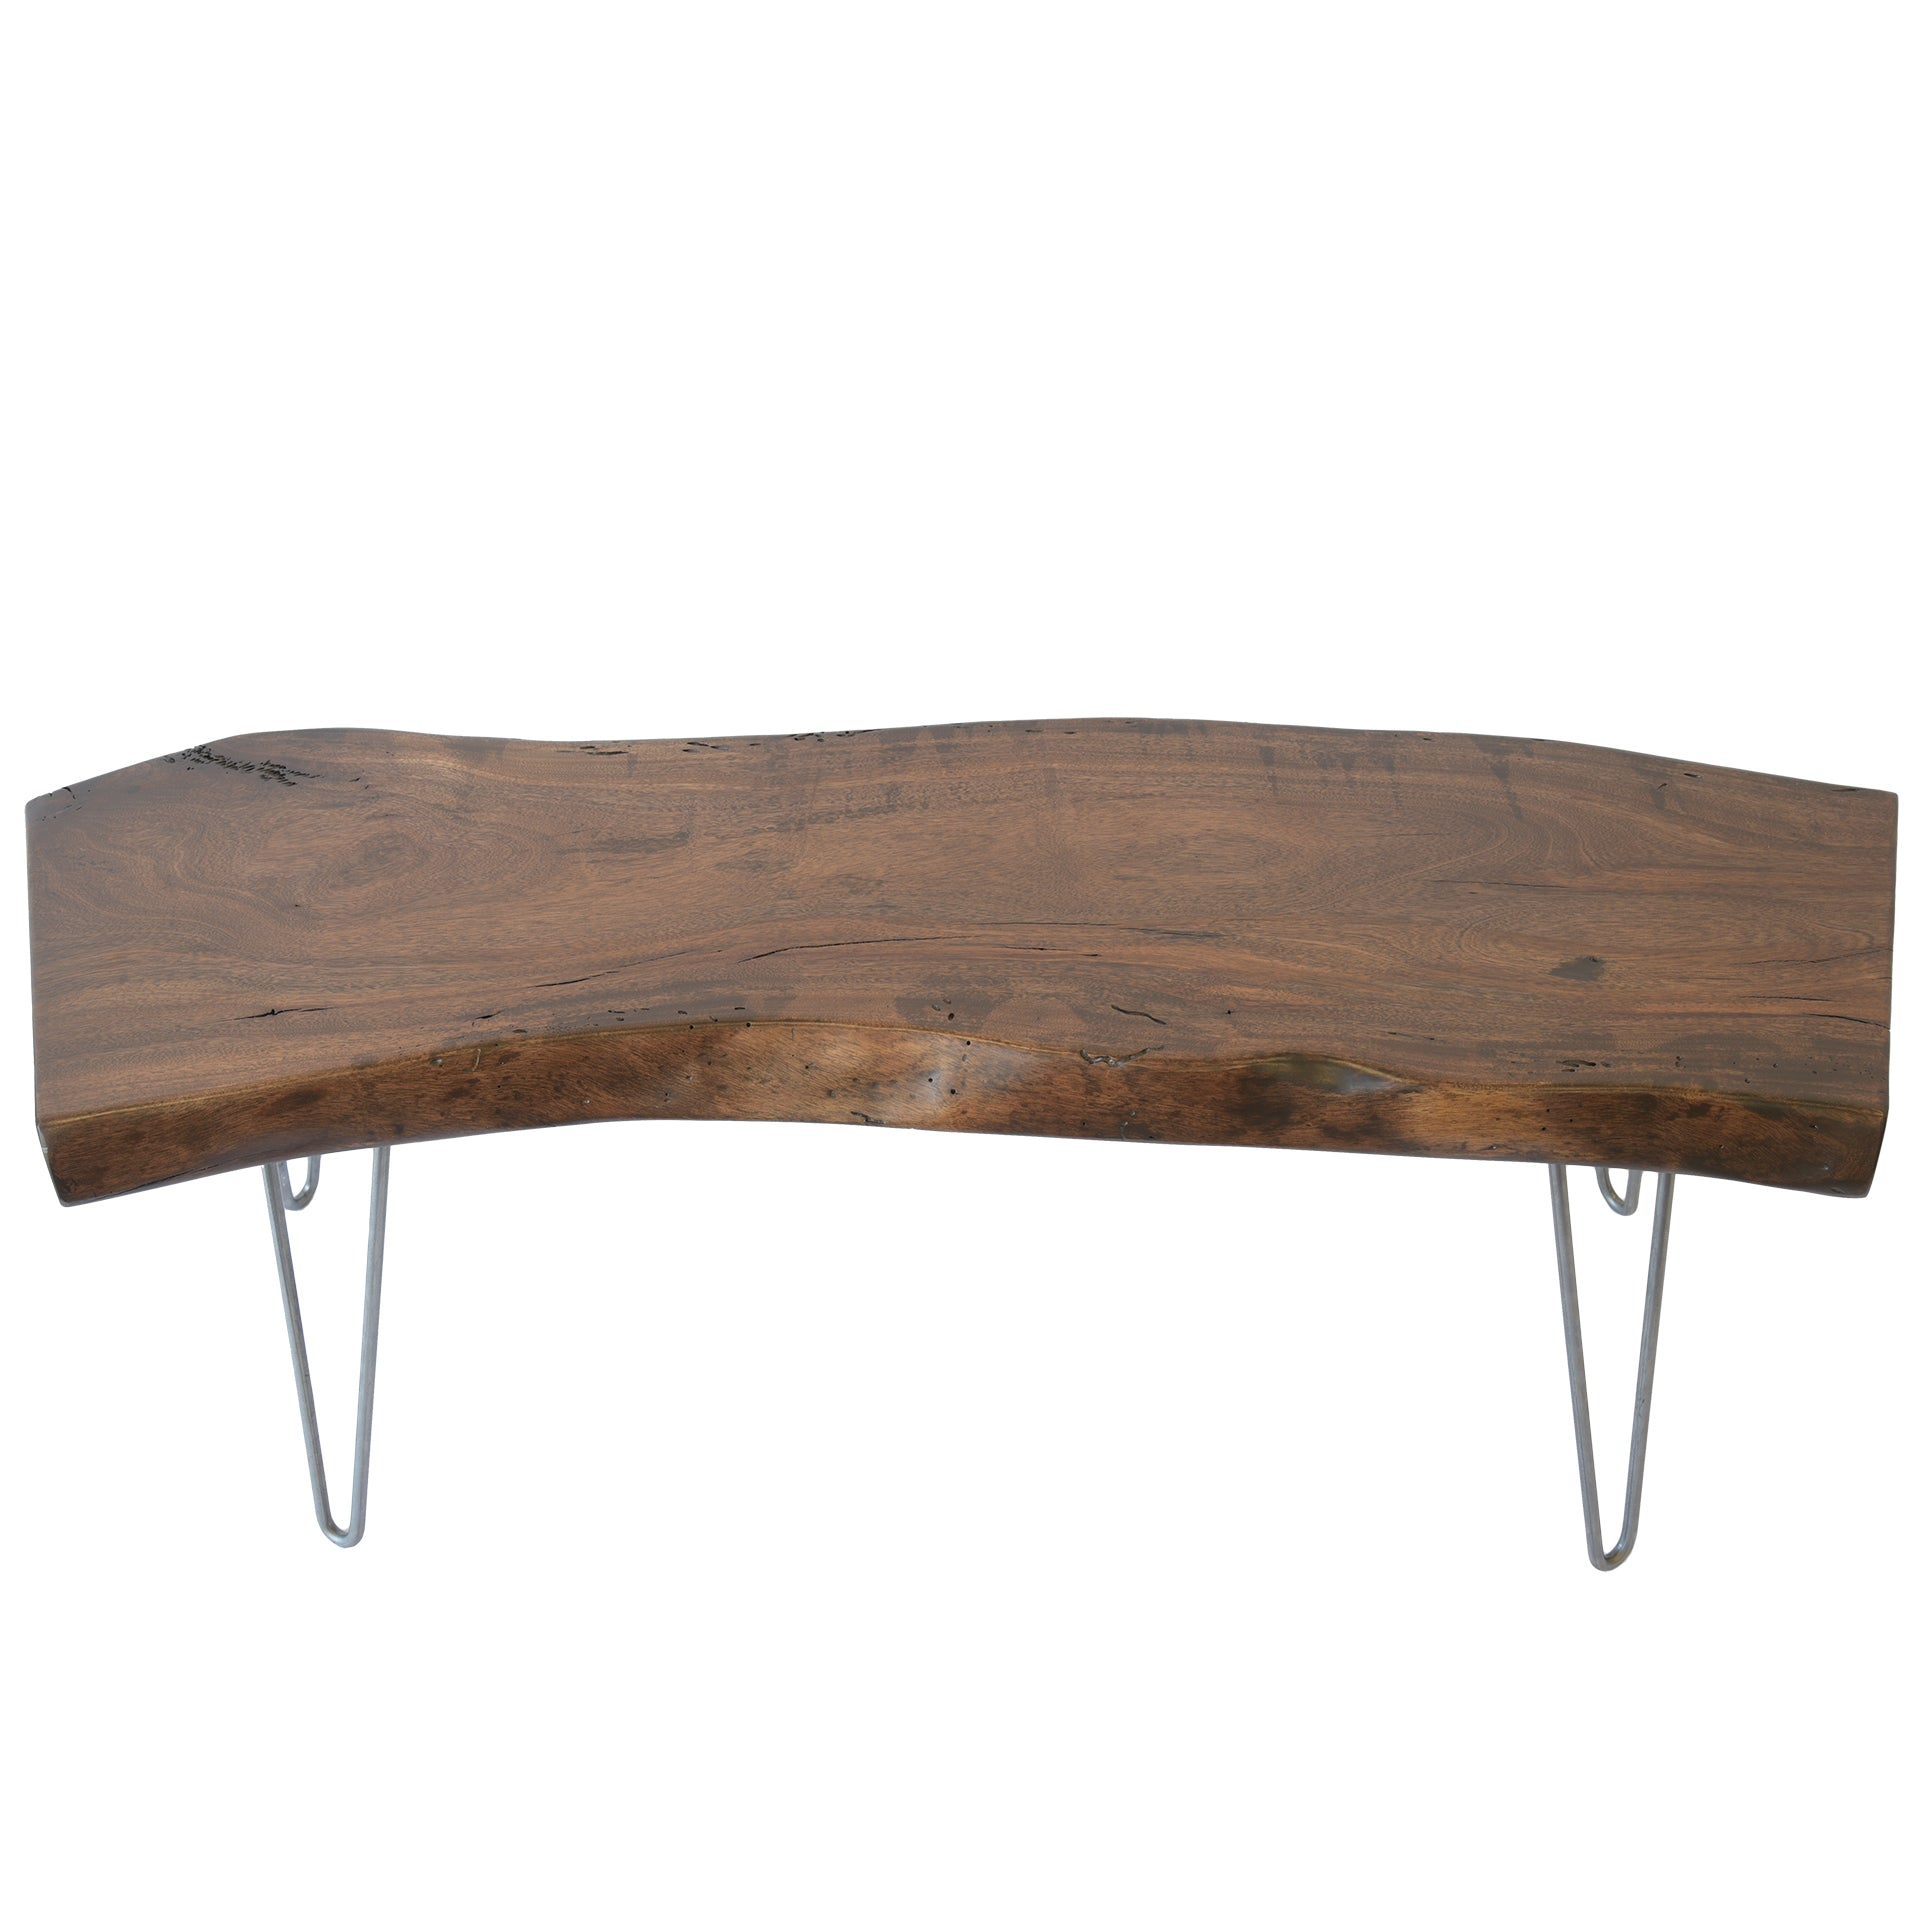 Reclaimed Wood Live Edge Slab Rustic Solid Wood Coffee Table